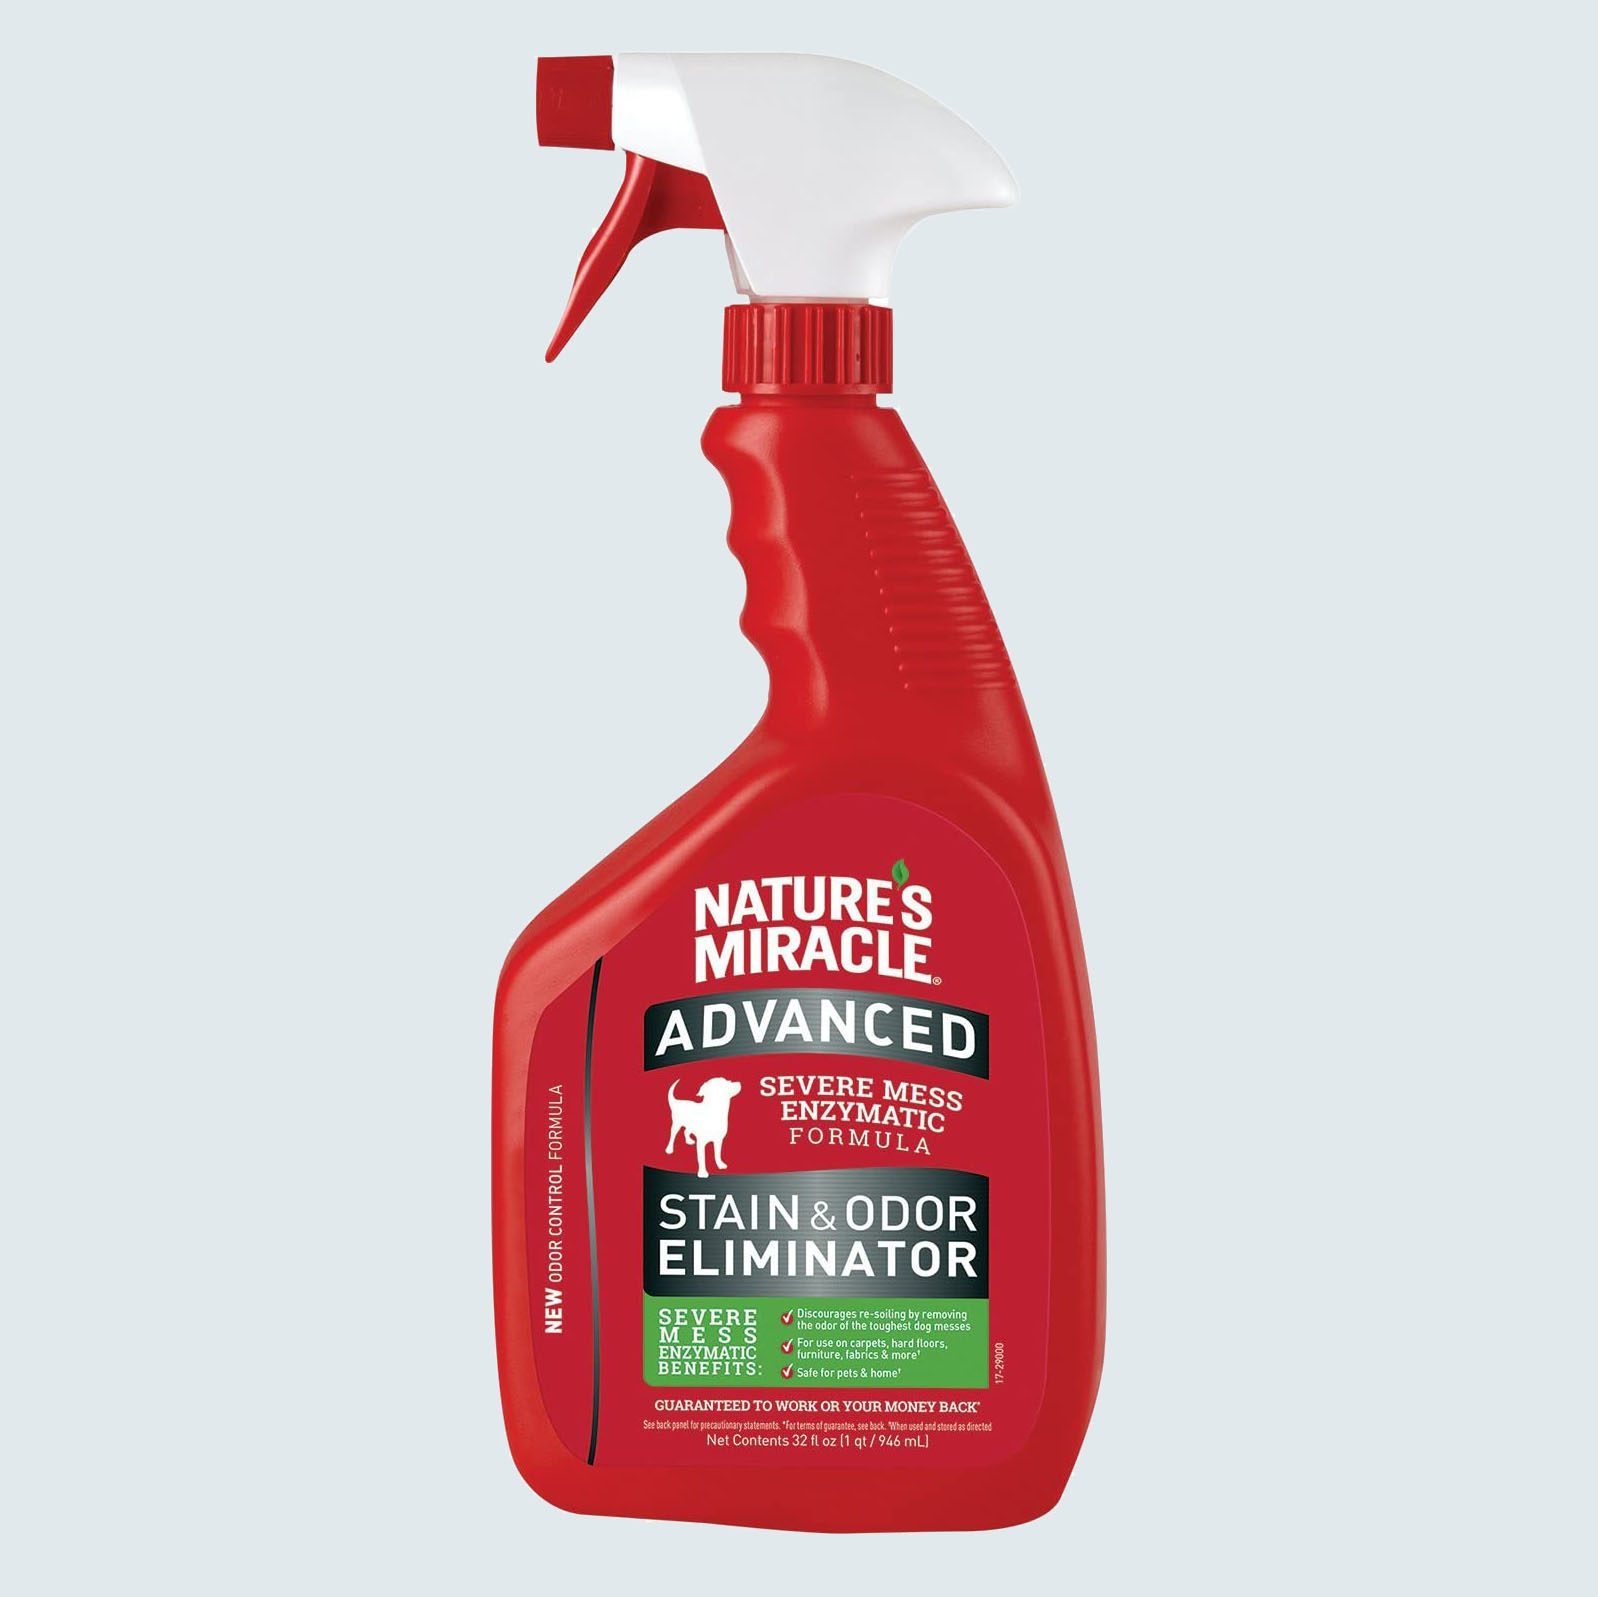 Nature's Miracle Advanced Stain & Odor Eliminator